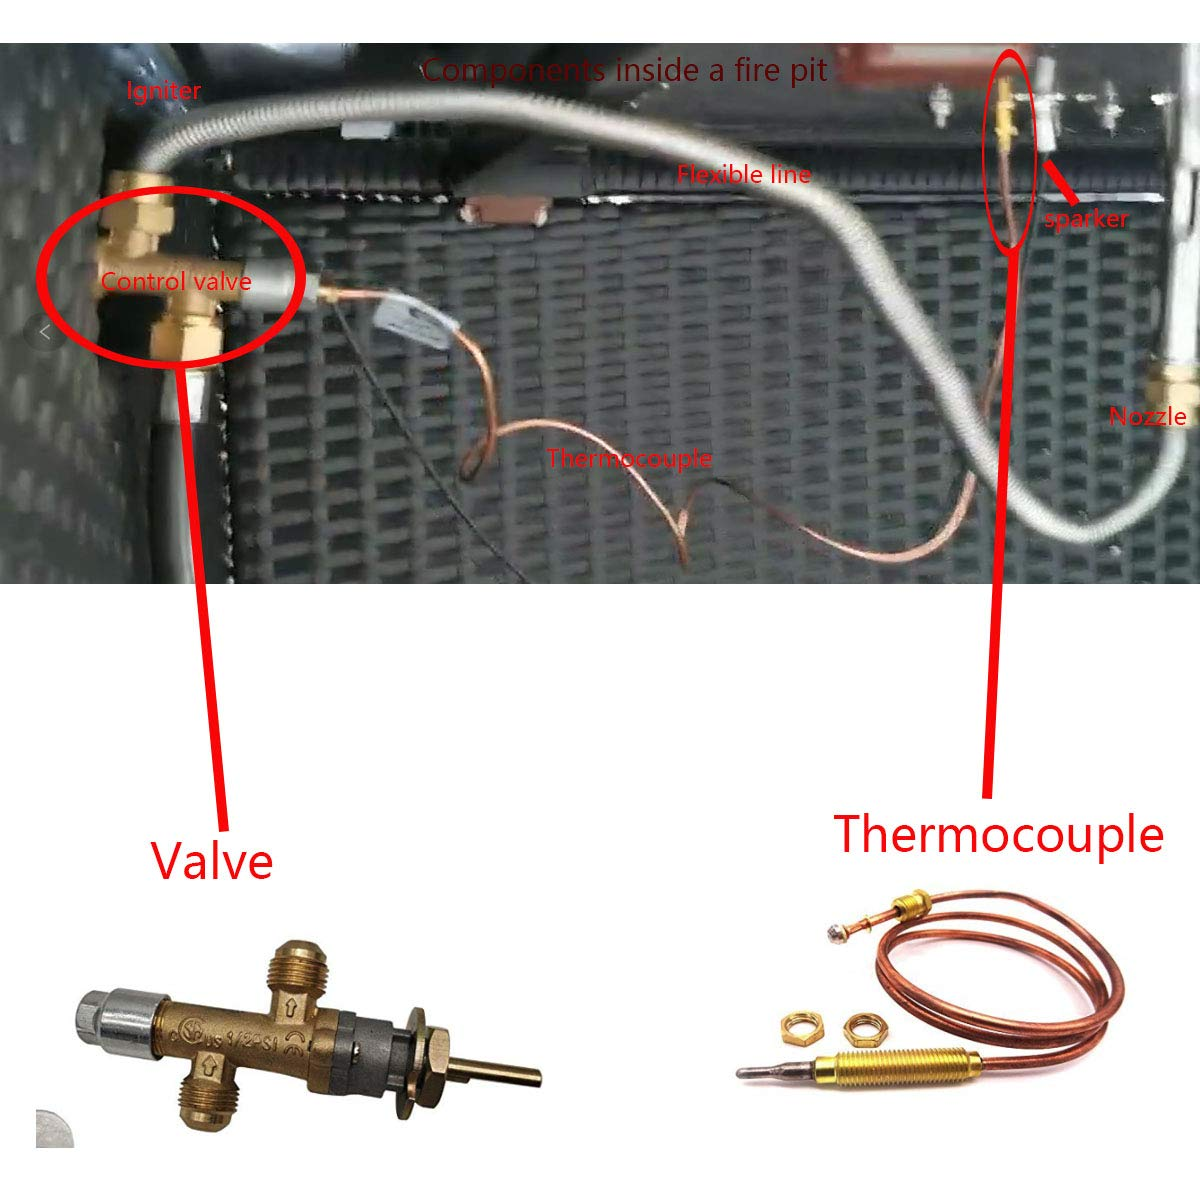 MENSI LPG fireplace gas control cock valve with thermocouple and knob